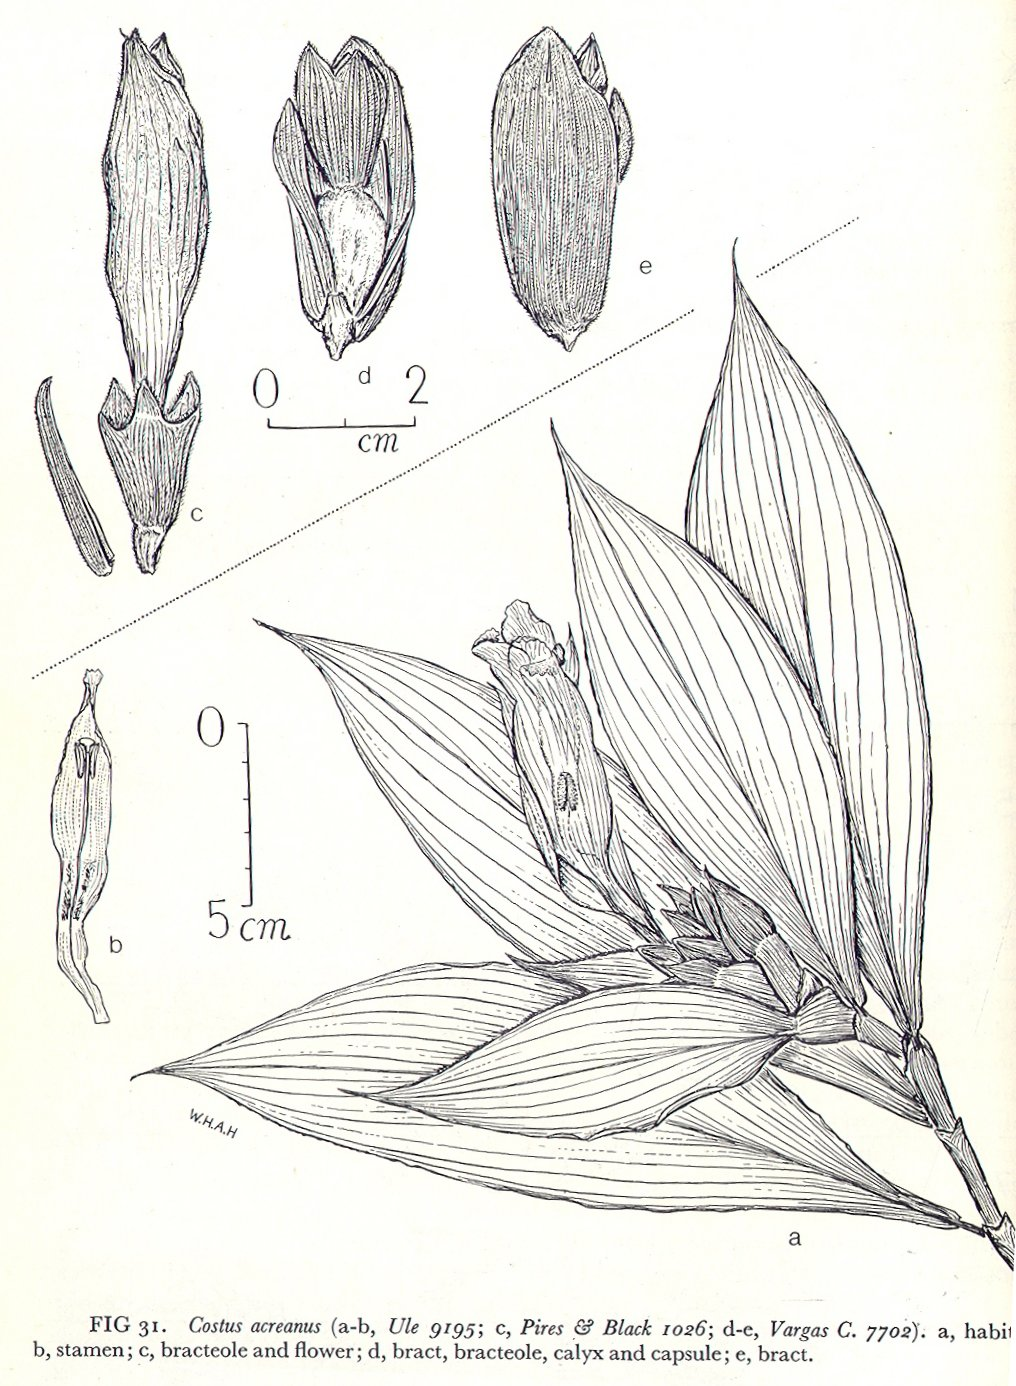 Photo# 17528 - Costus acreanus - the illustration in Maas' monograph shows appendaged bracts on full inflorescence, non-appendaged bracts in illustration part